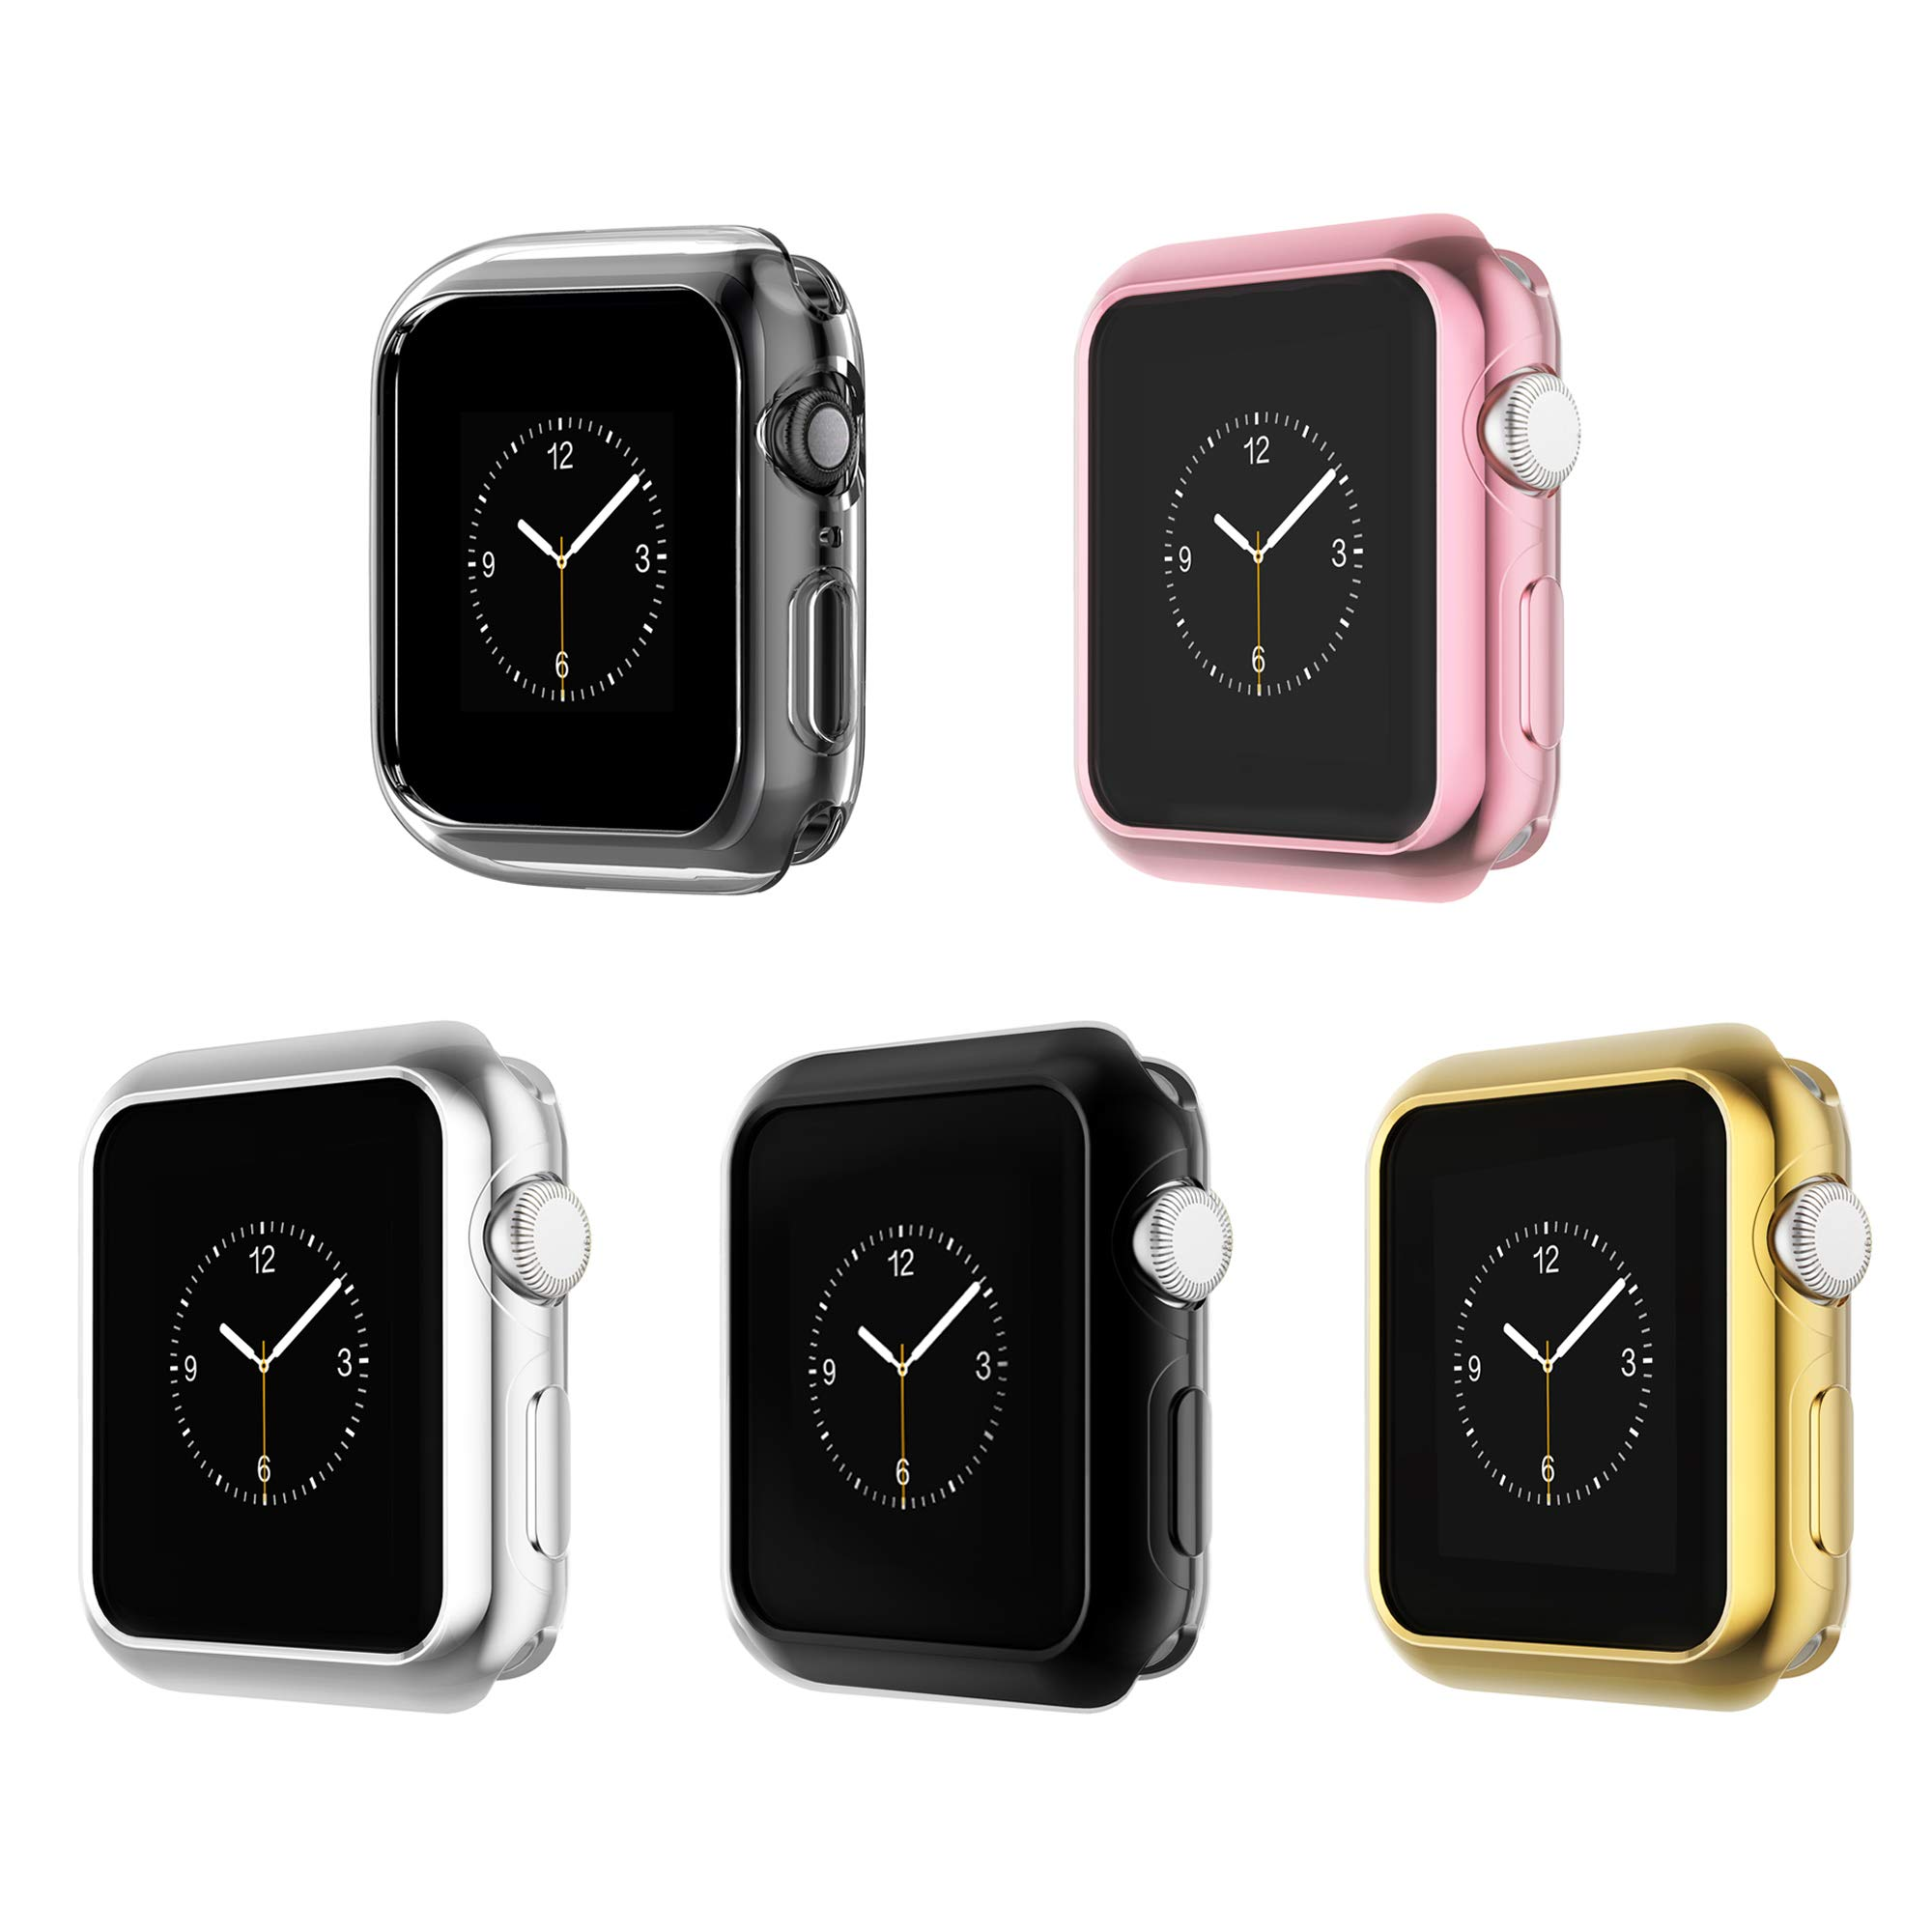 Leotop Compatible with Apple Watch Case 44mm 40mm, Soft Flexible TPU Plated Protector Bumper Shiny Cover Lightweight Thin Guard Shockproof Frame Compatible for iWatch Series 4 (2-5 Color Pack, 44mm)